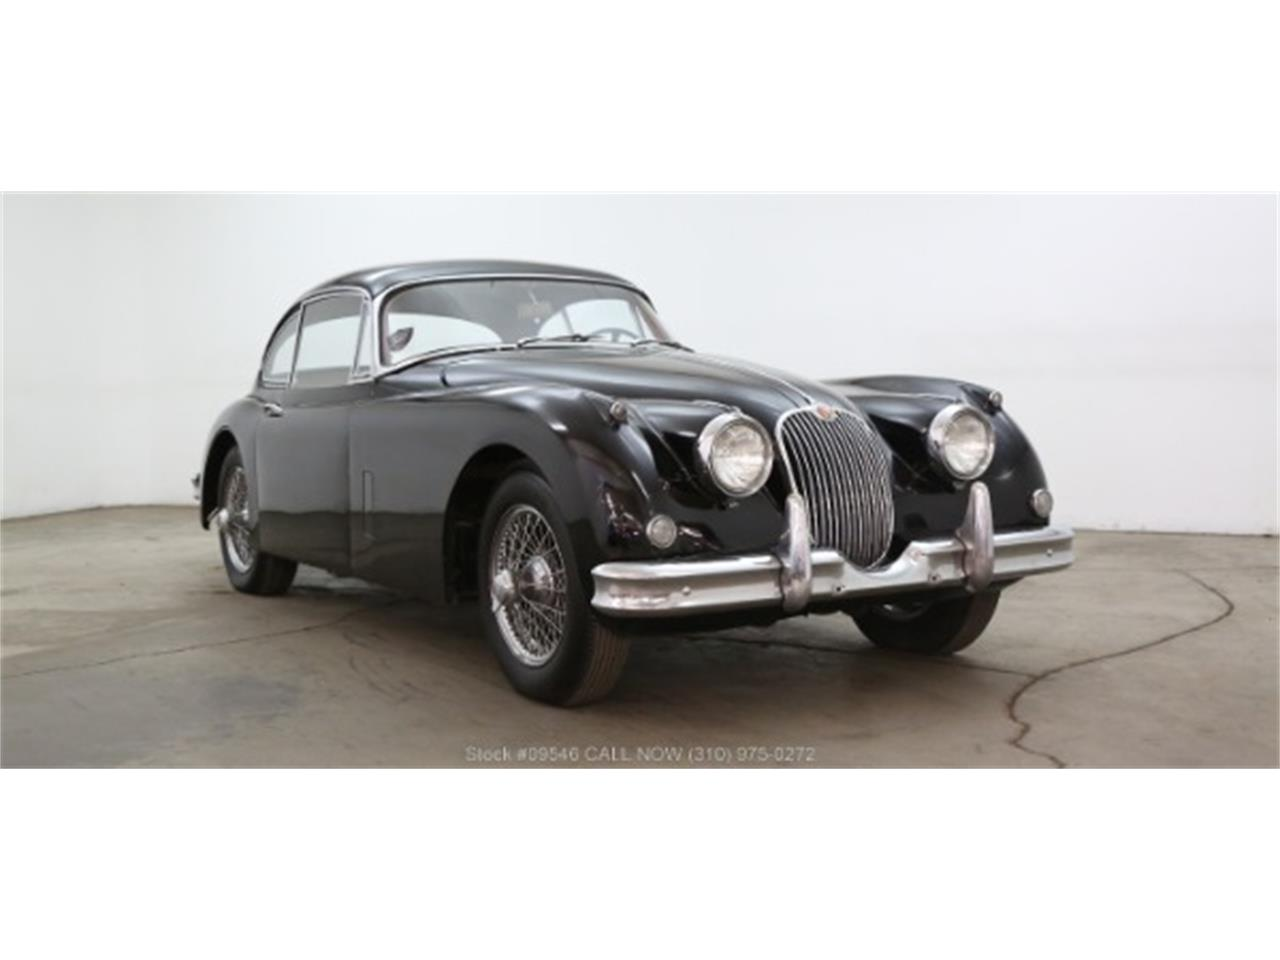 hight resolution of large picture of classic 58 jaguar xk150 n8q5